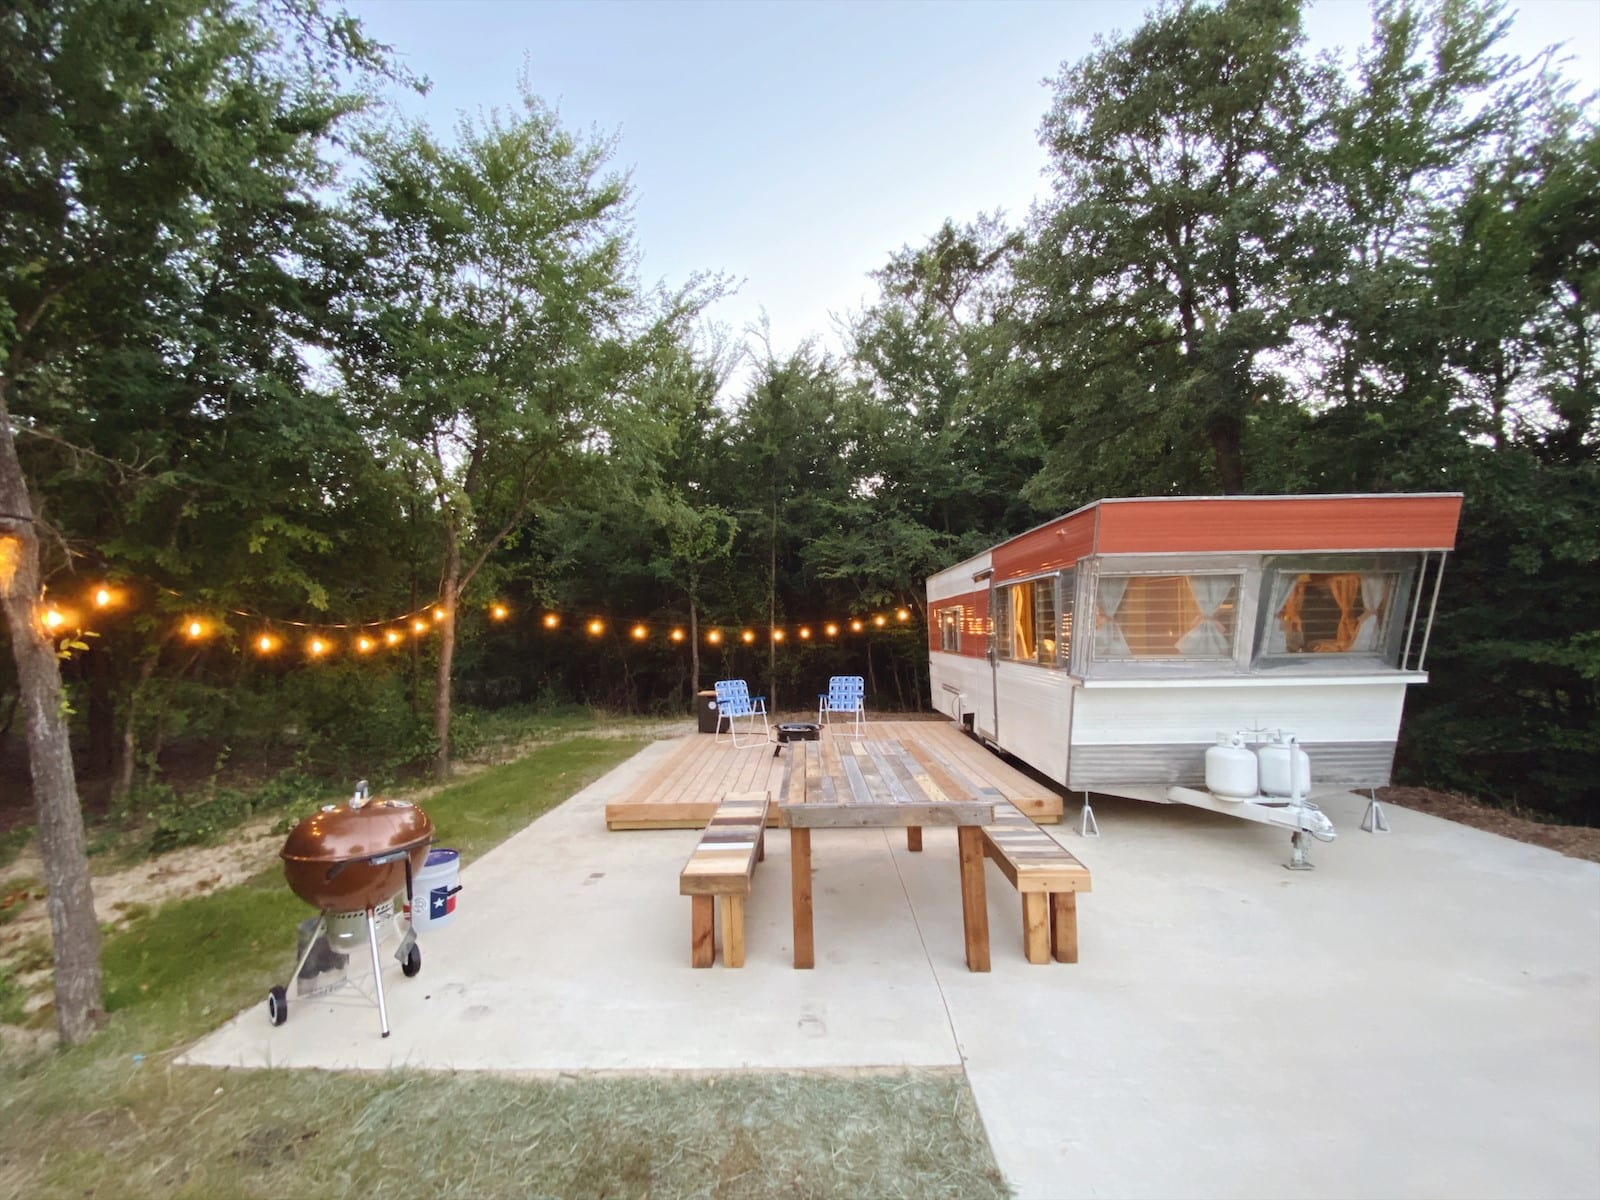 Vintage travel trailer surrounded by trees and a string of lights with wooden deck and wood table and grill